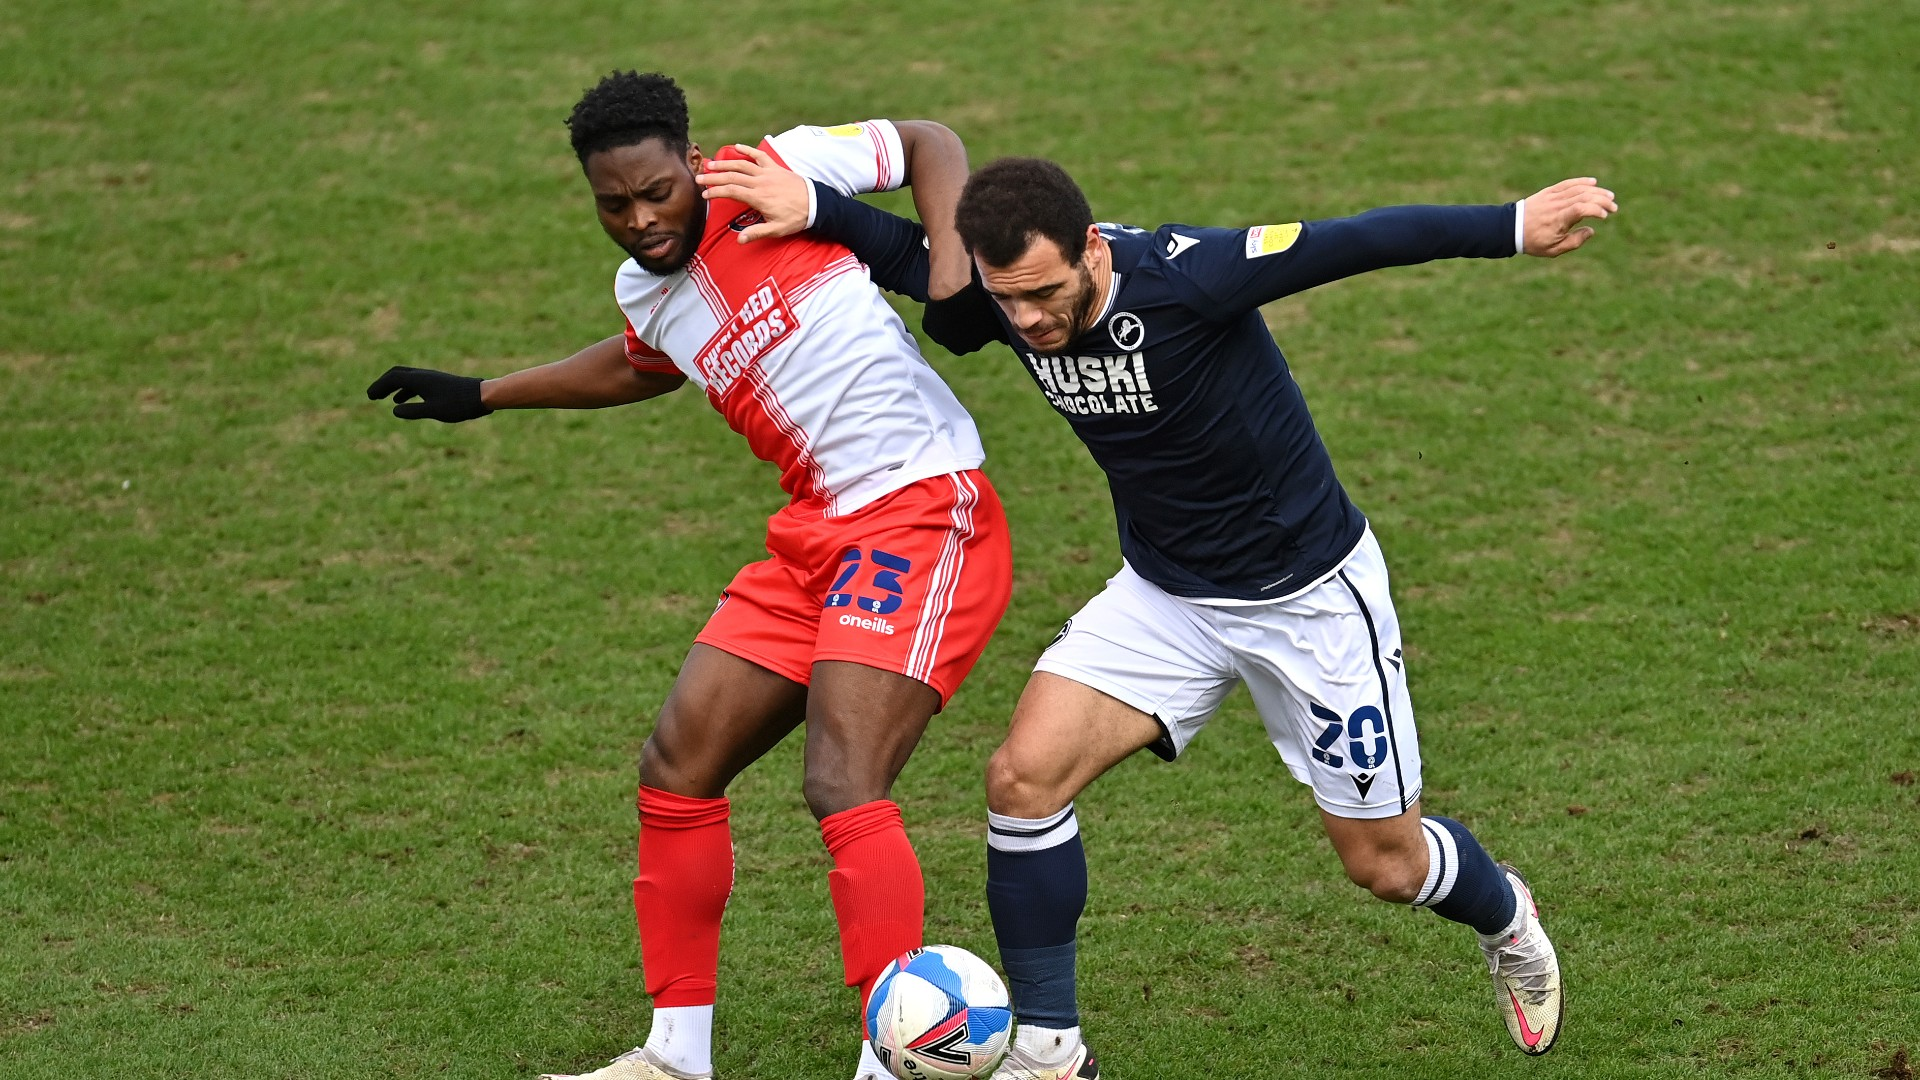 Onyedinma dazzles with goal and assist on Luton Town debut, Oduor's Barnsley held by Cardiff City